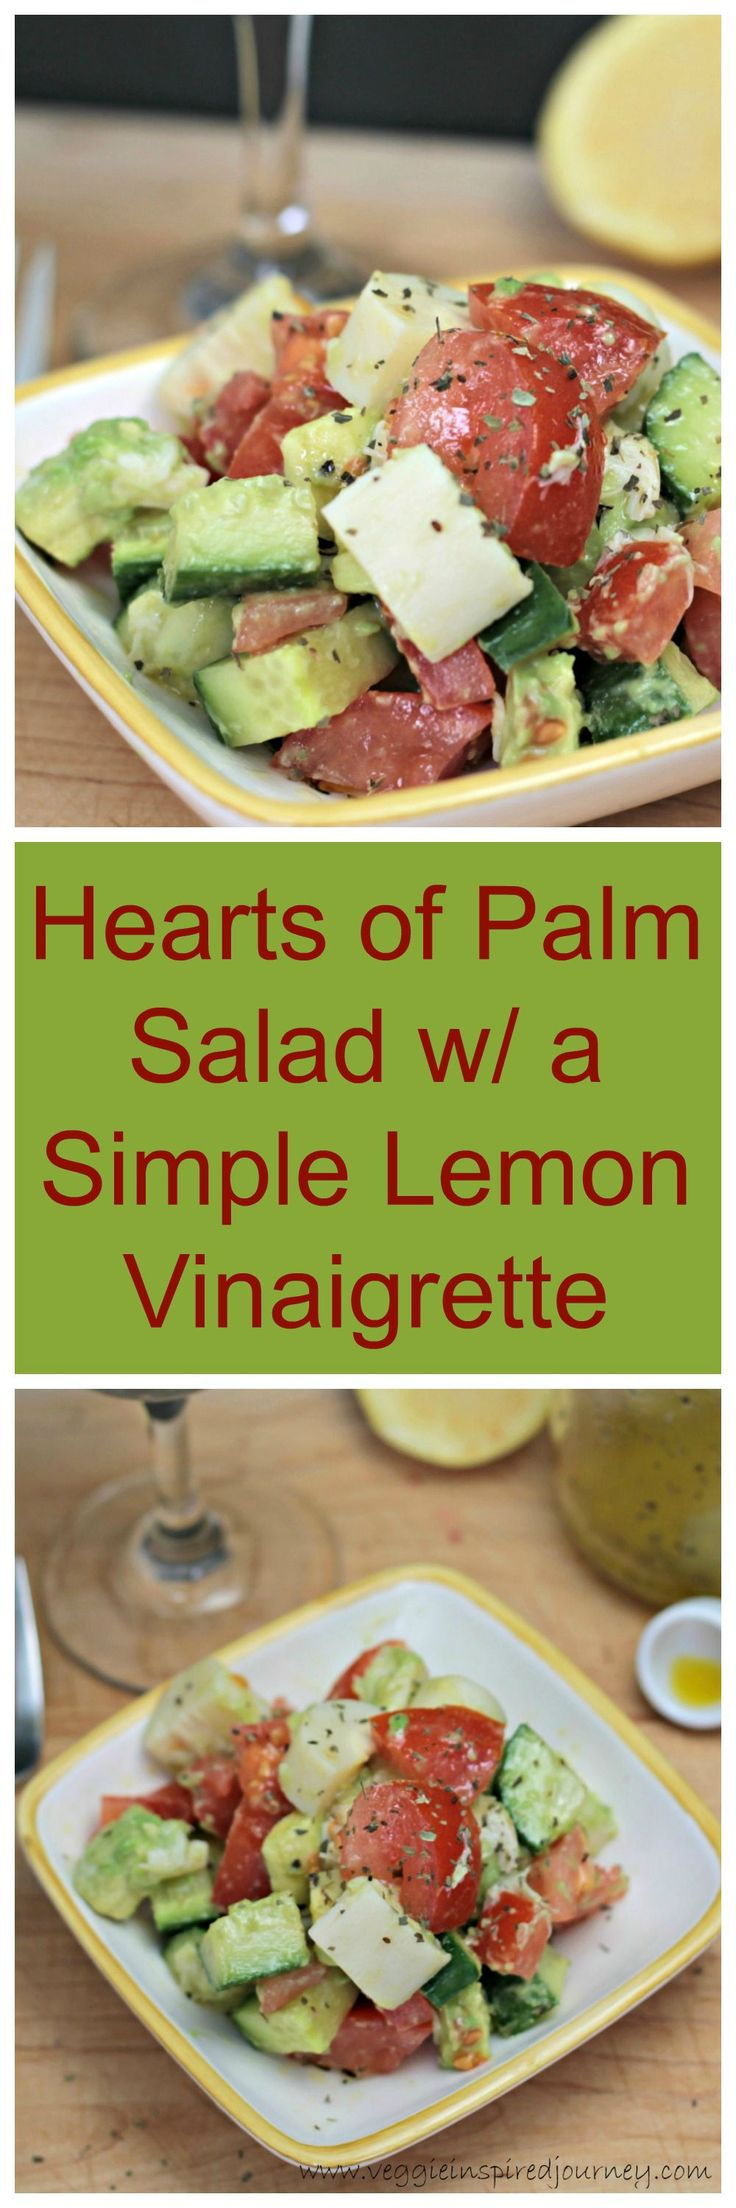 Hearts of Palm Salad w/ a Simple Lemon Vinaigrette - just few simple ingredients come together in mere minutes to create this delicious flavorful salad. #vegan #heartsofpalm #salad #healthy #wfpb